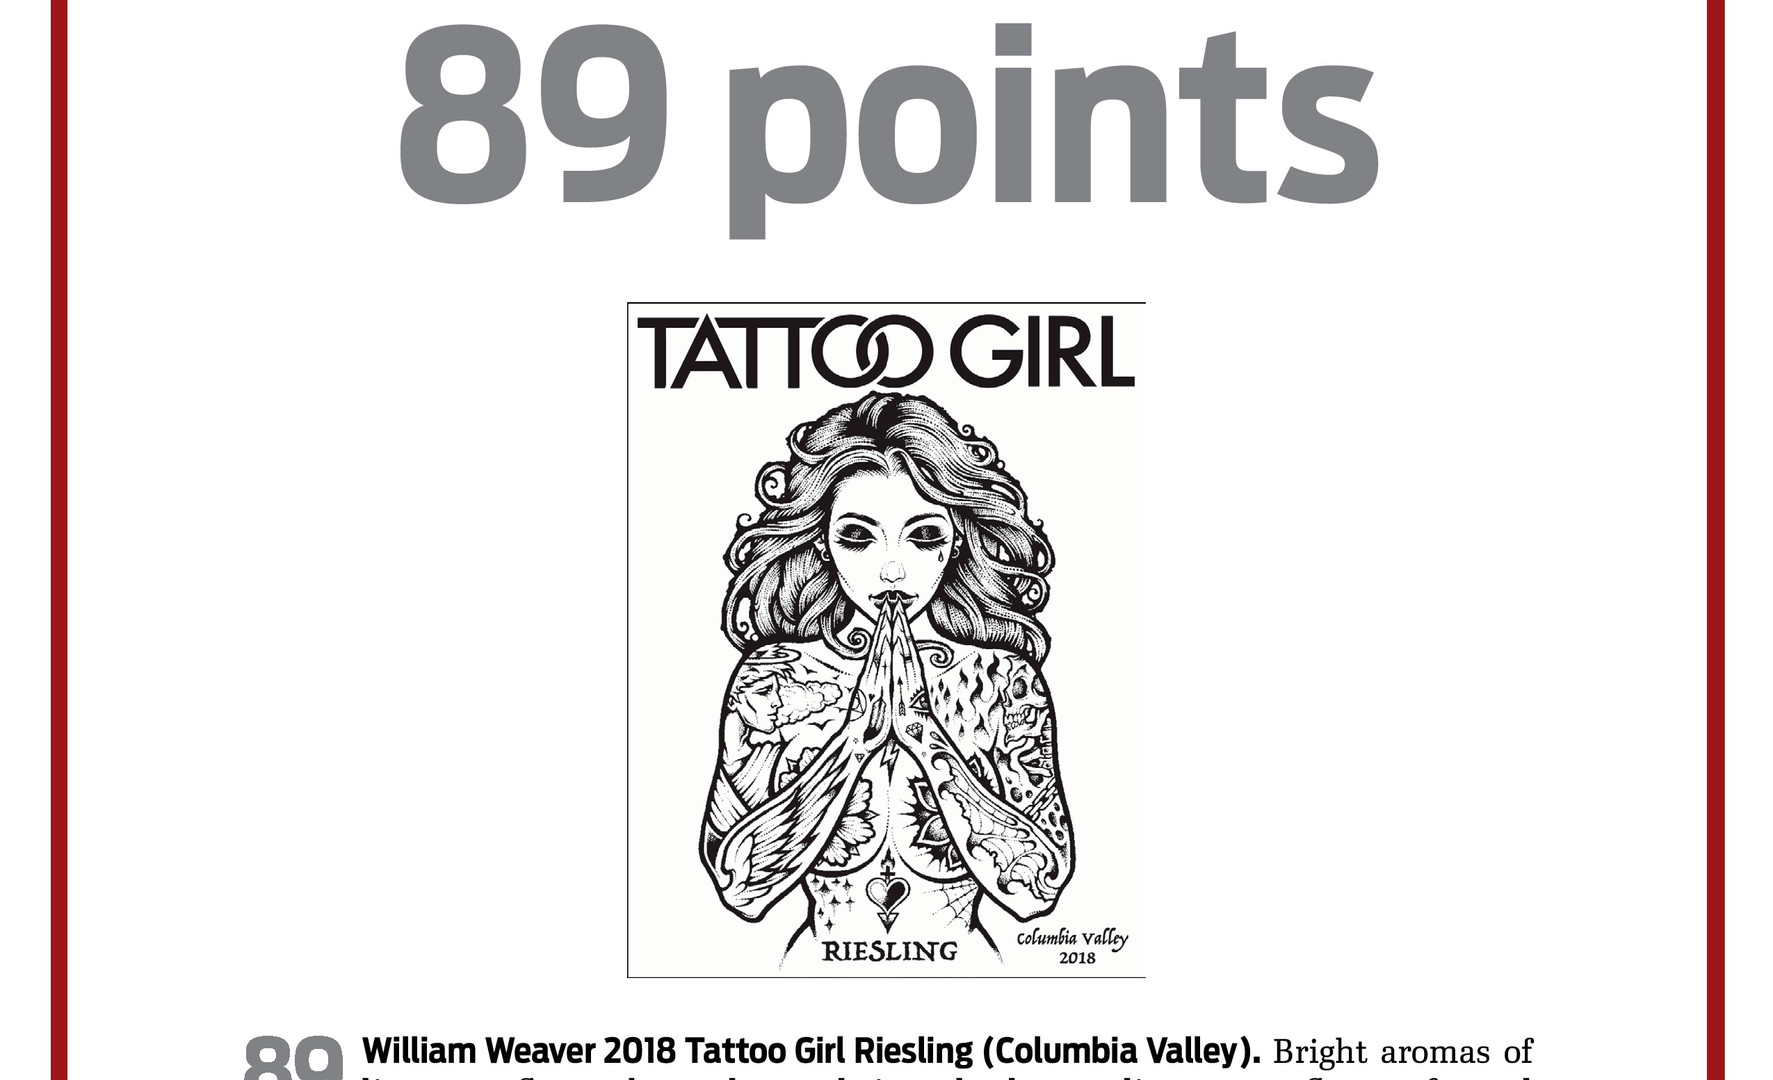 2018 Tattoo Girl Riesling